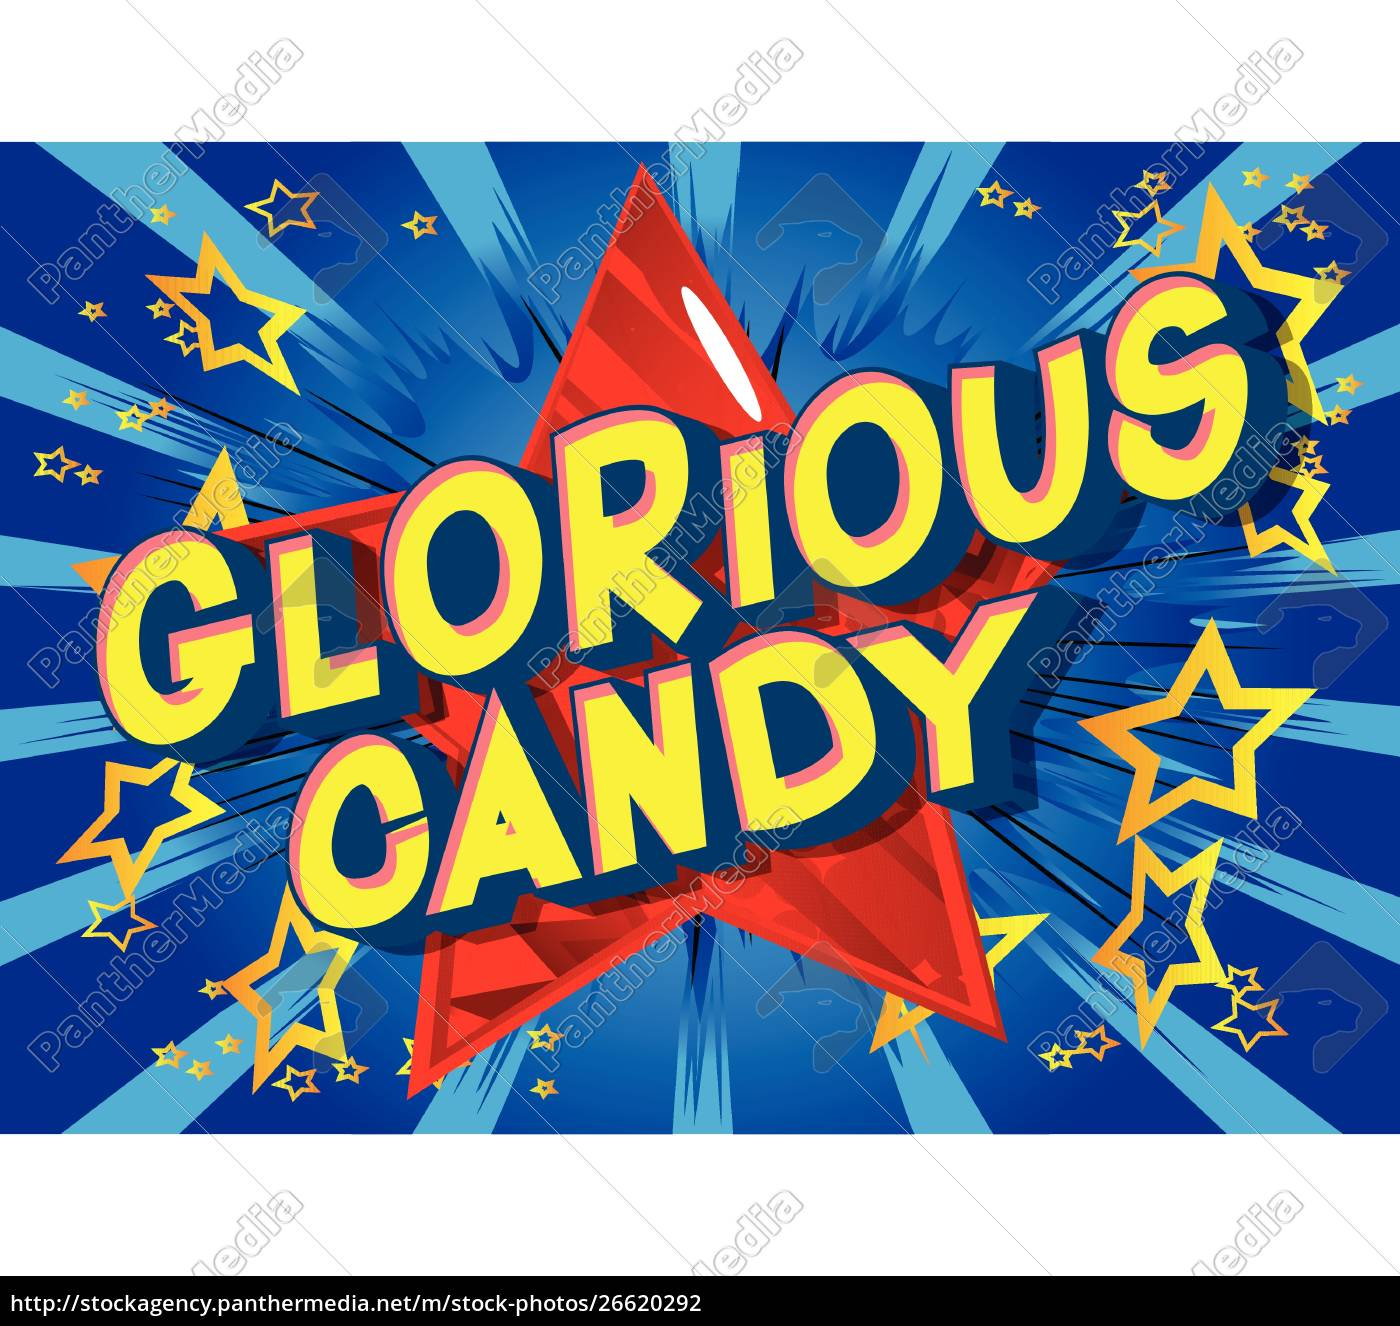 glorious, candy, -, comic, book, style - 26620292